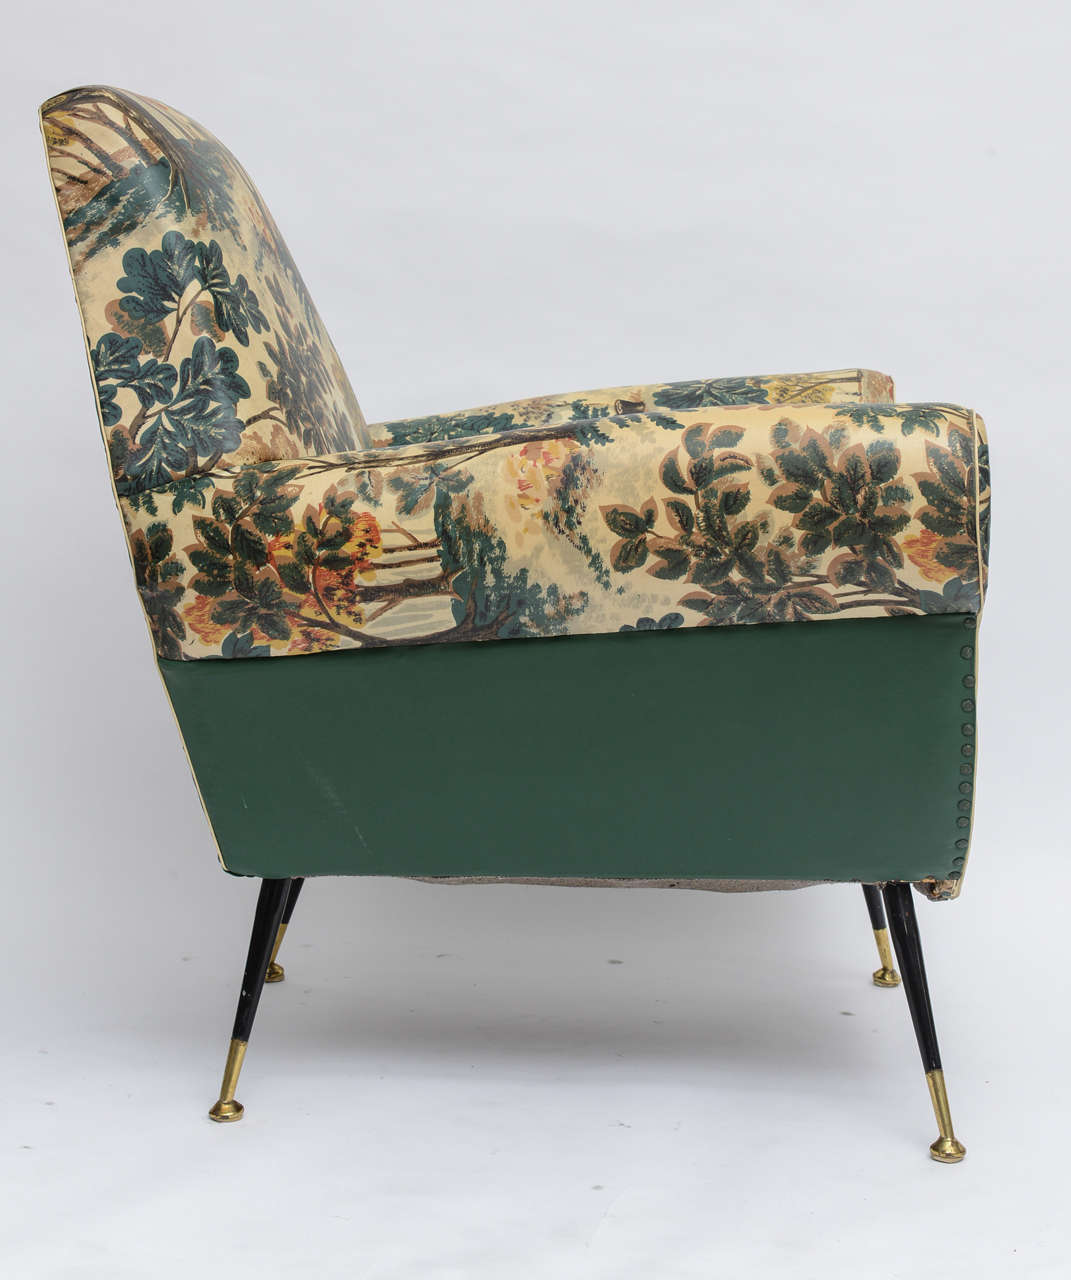 50's Italian Armchair with Original Upholstery (2 Available) 5